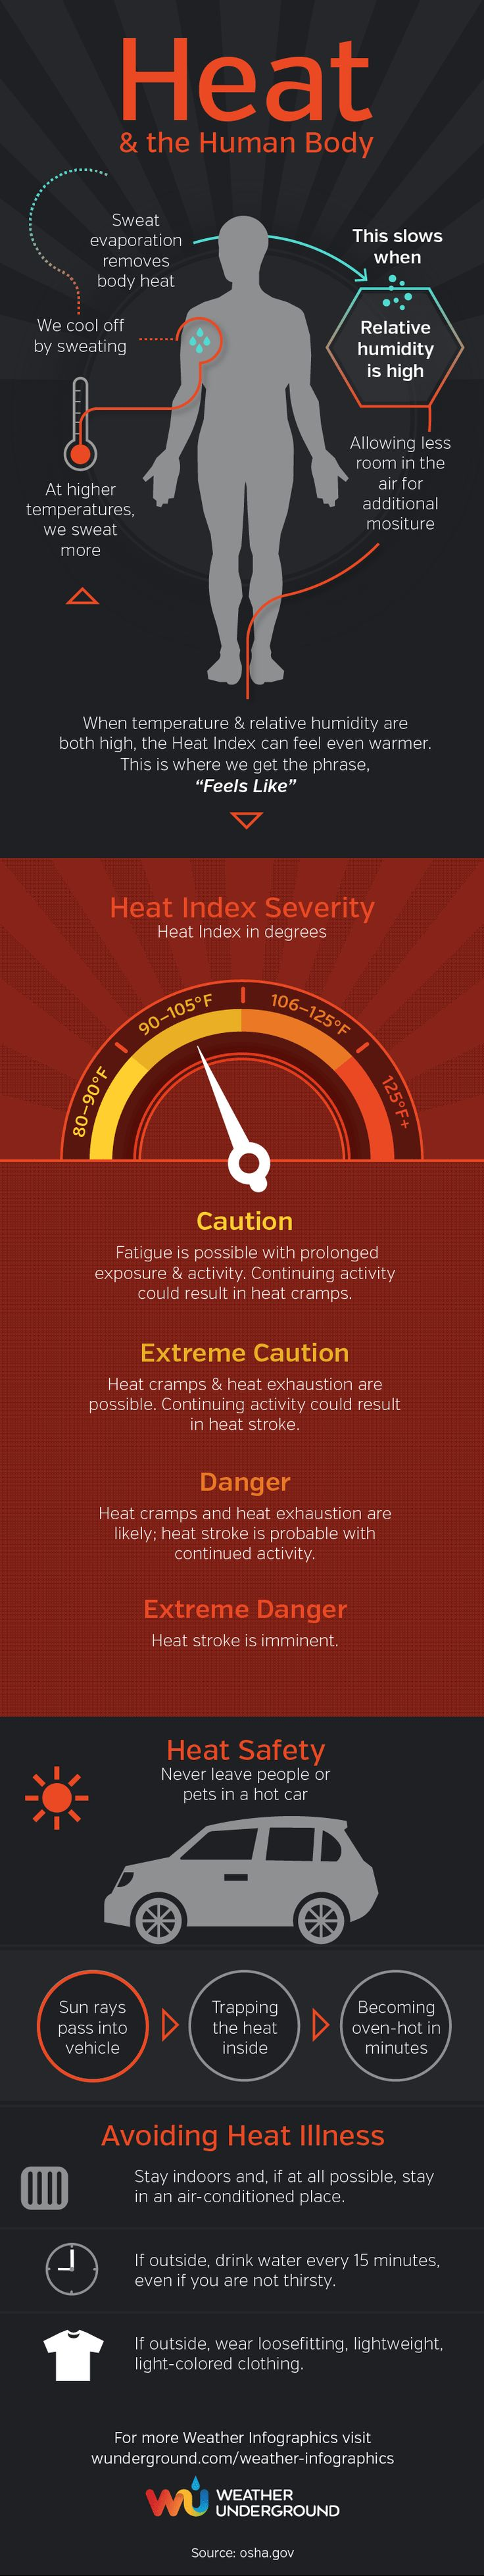 Heat and the Human Body Infographic